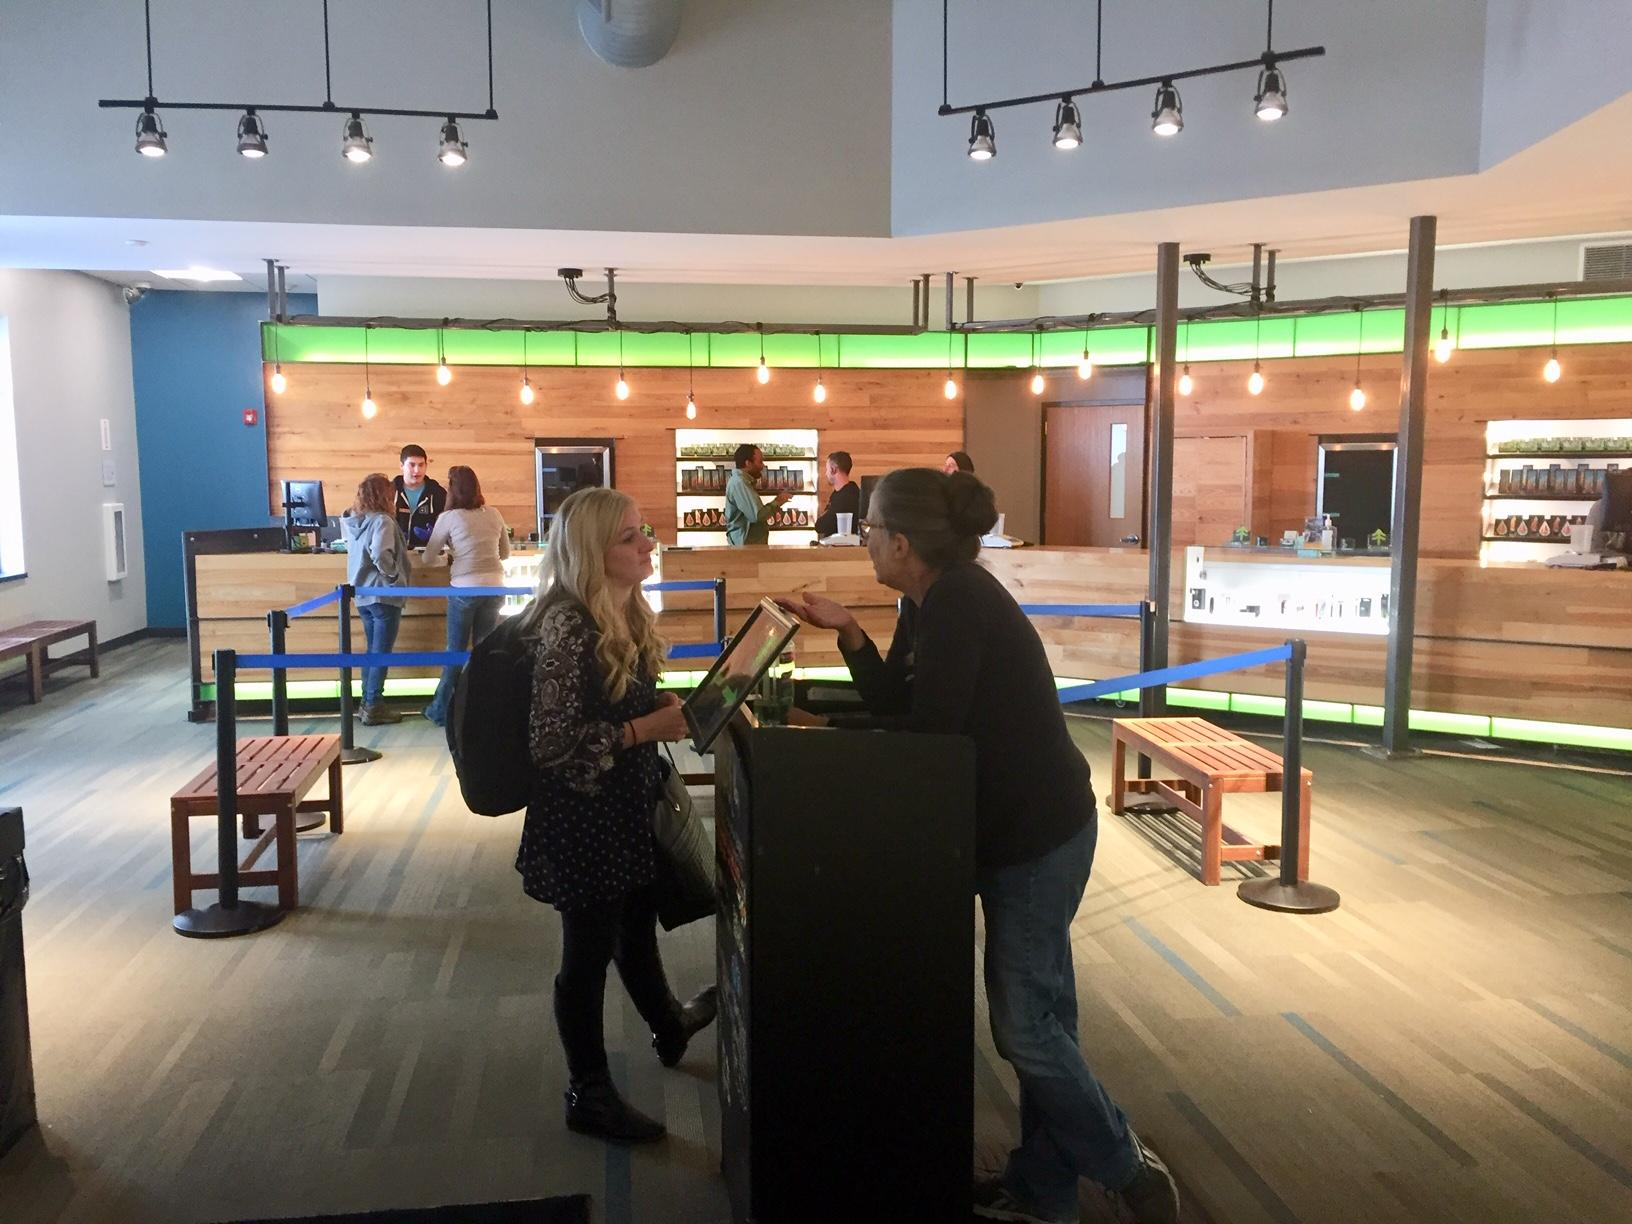 Inside What Could Be The First Retail Marijuana Shop On The